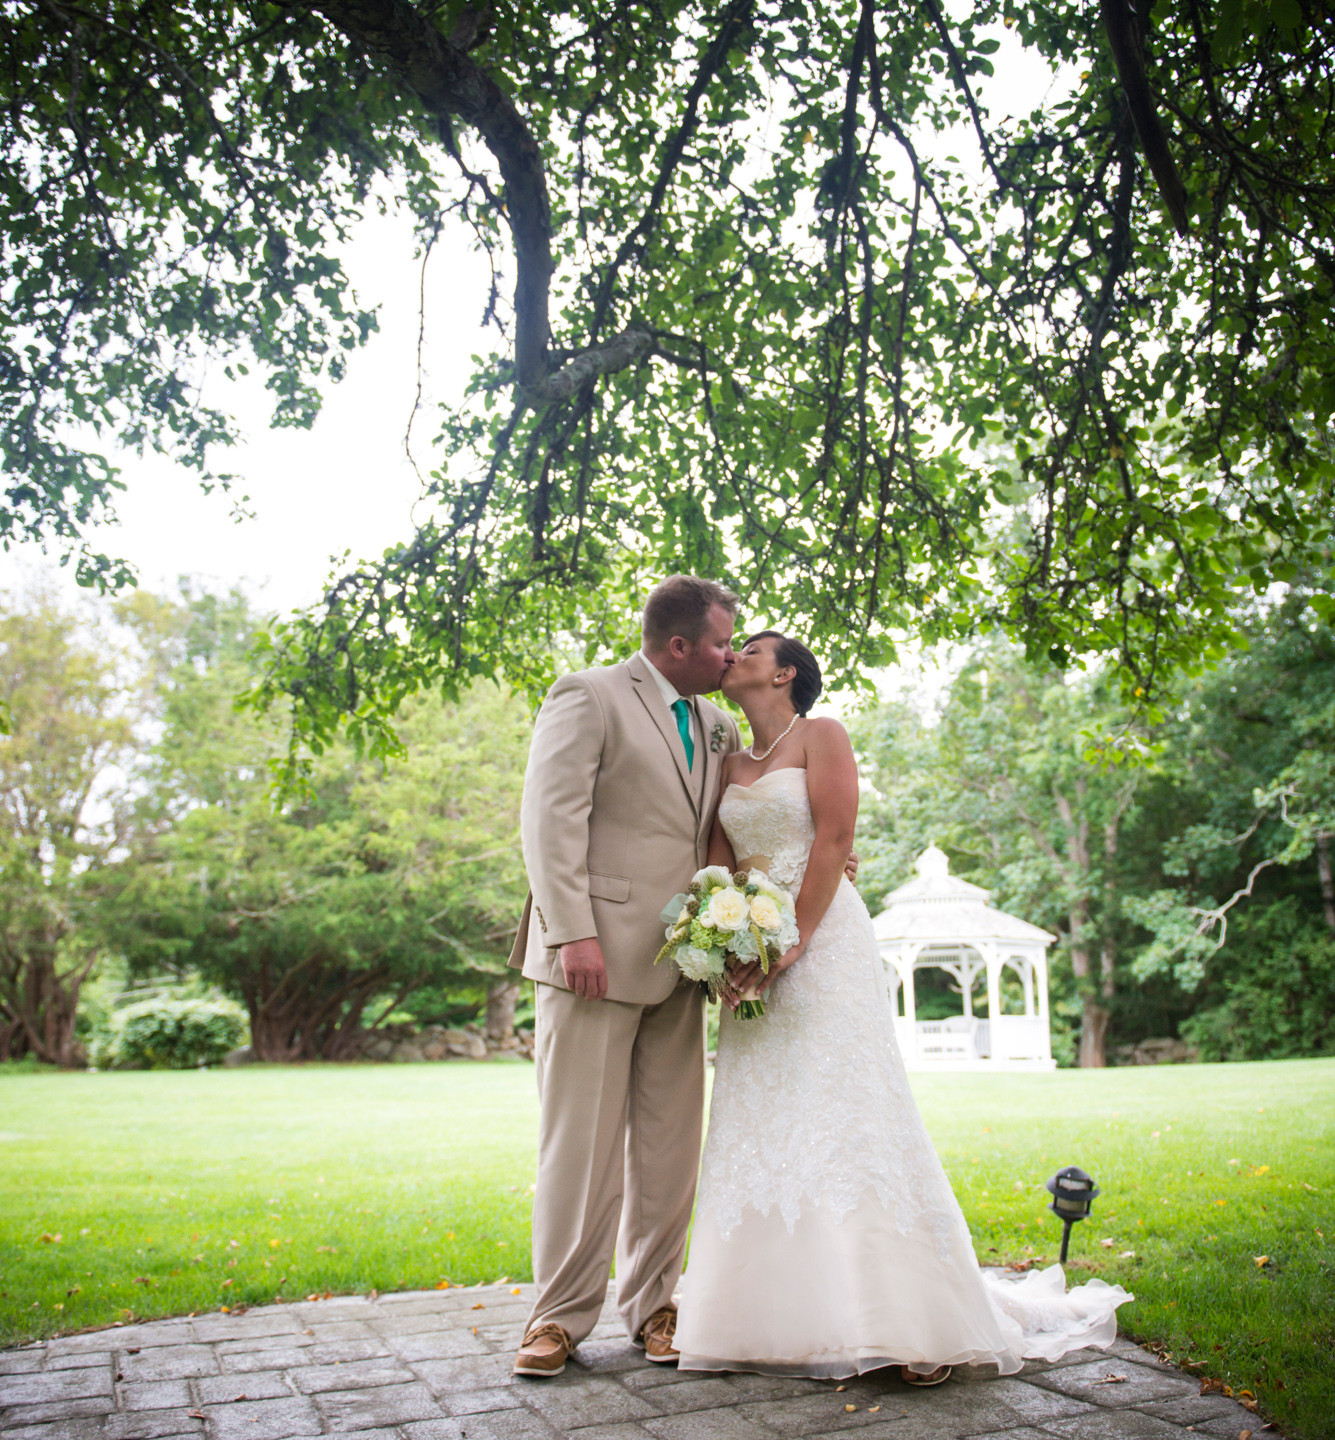 A bride and groom kiss at a magical Lambert's Cove Inn setting photo by David Welch Photography